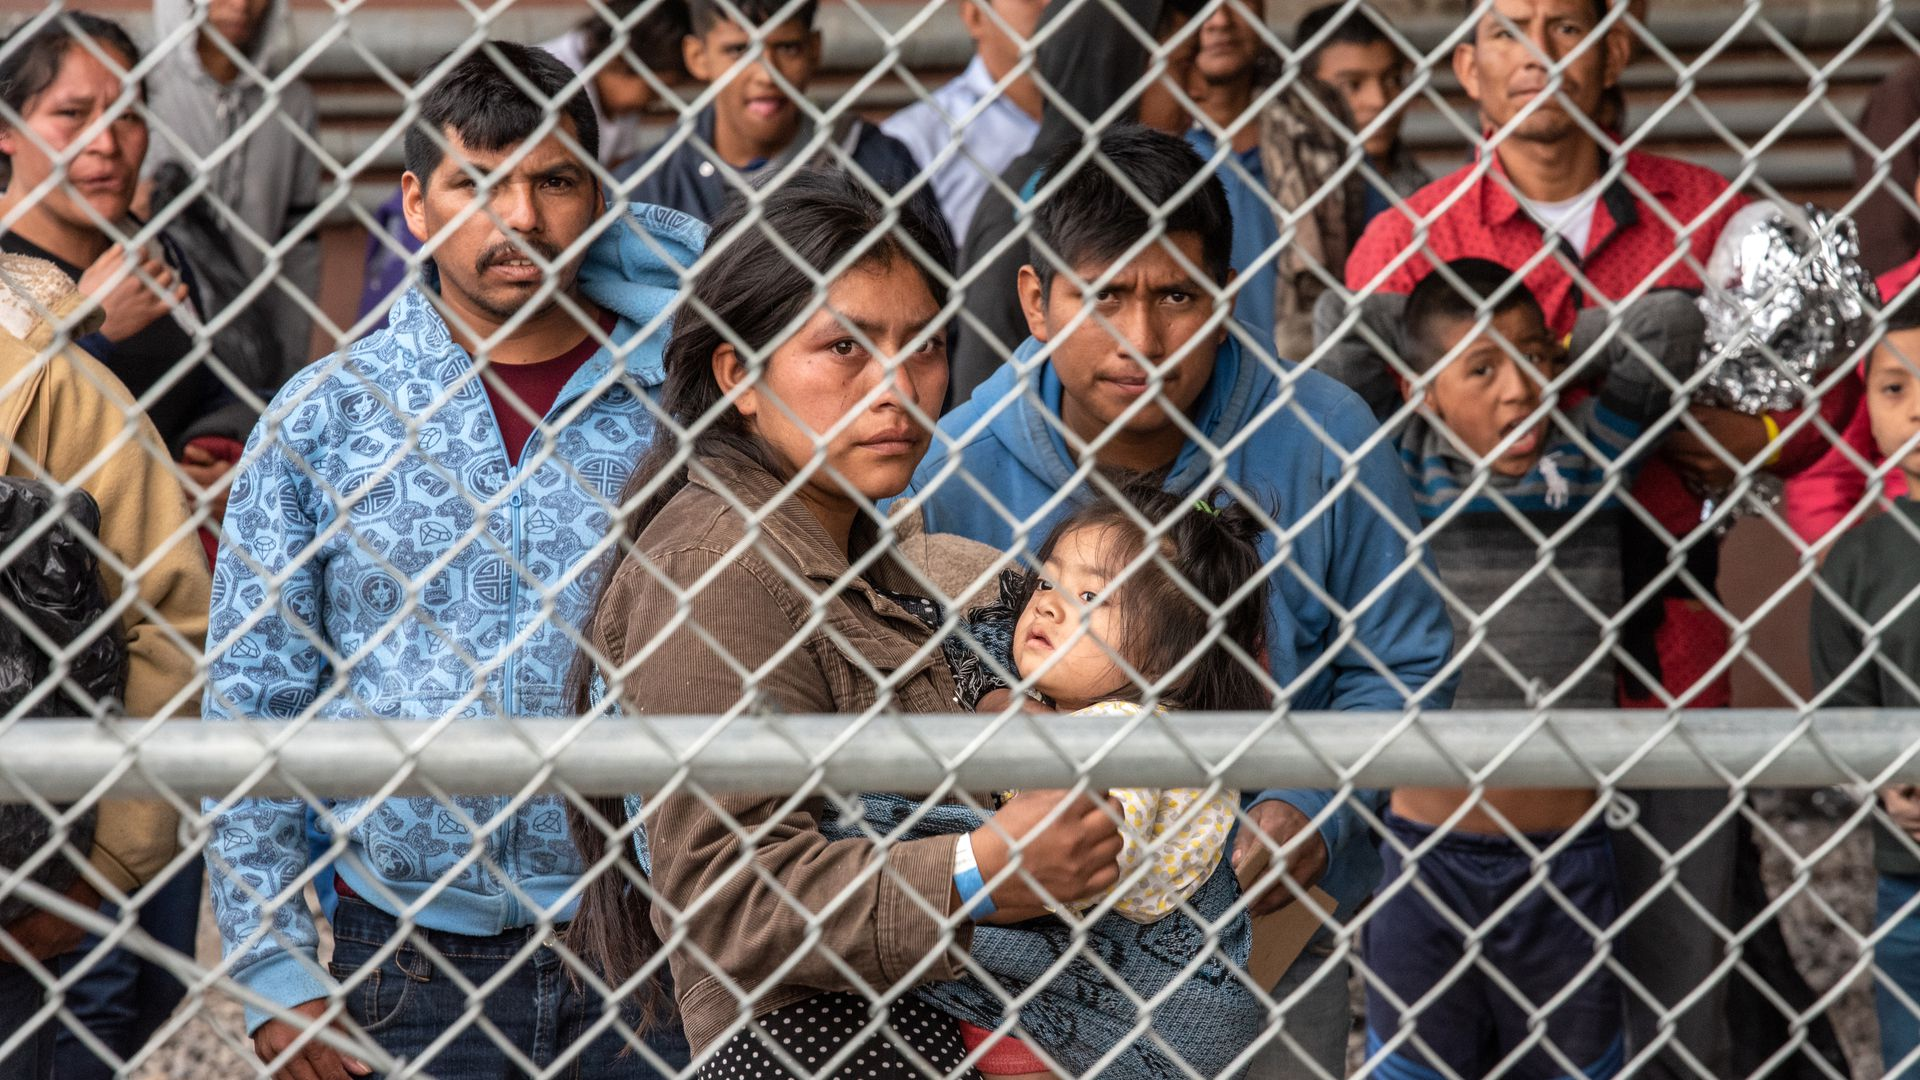 Migrants are gathered inside the fence of a makeshift detention center